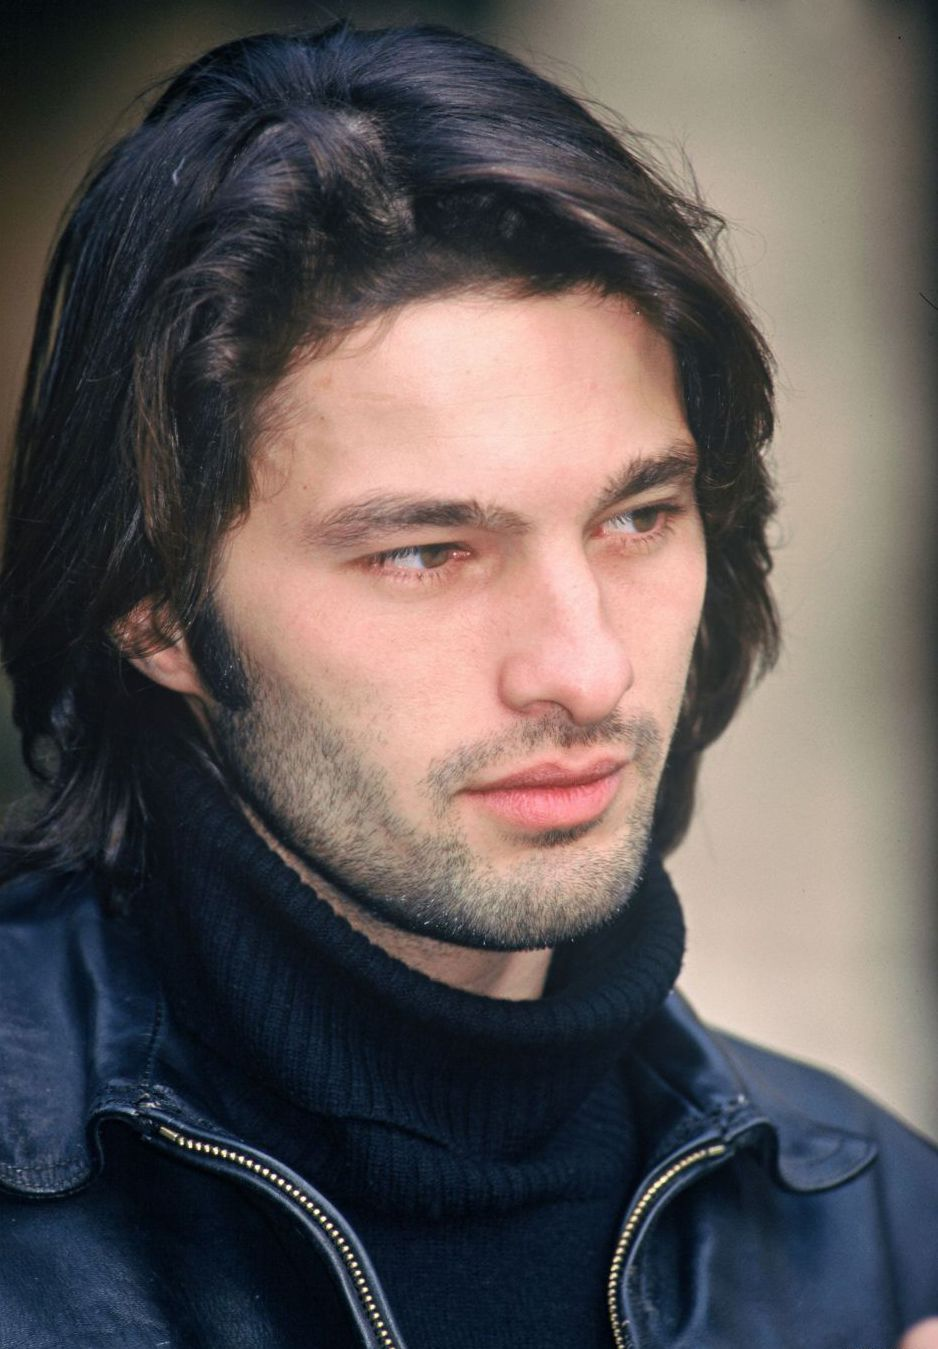 Mens haircuts for 40 year olds olivier martinez  guapos all the time  pinterest  beautiful people